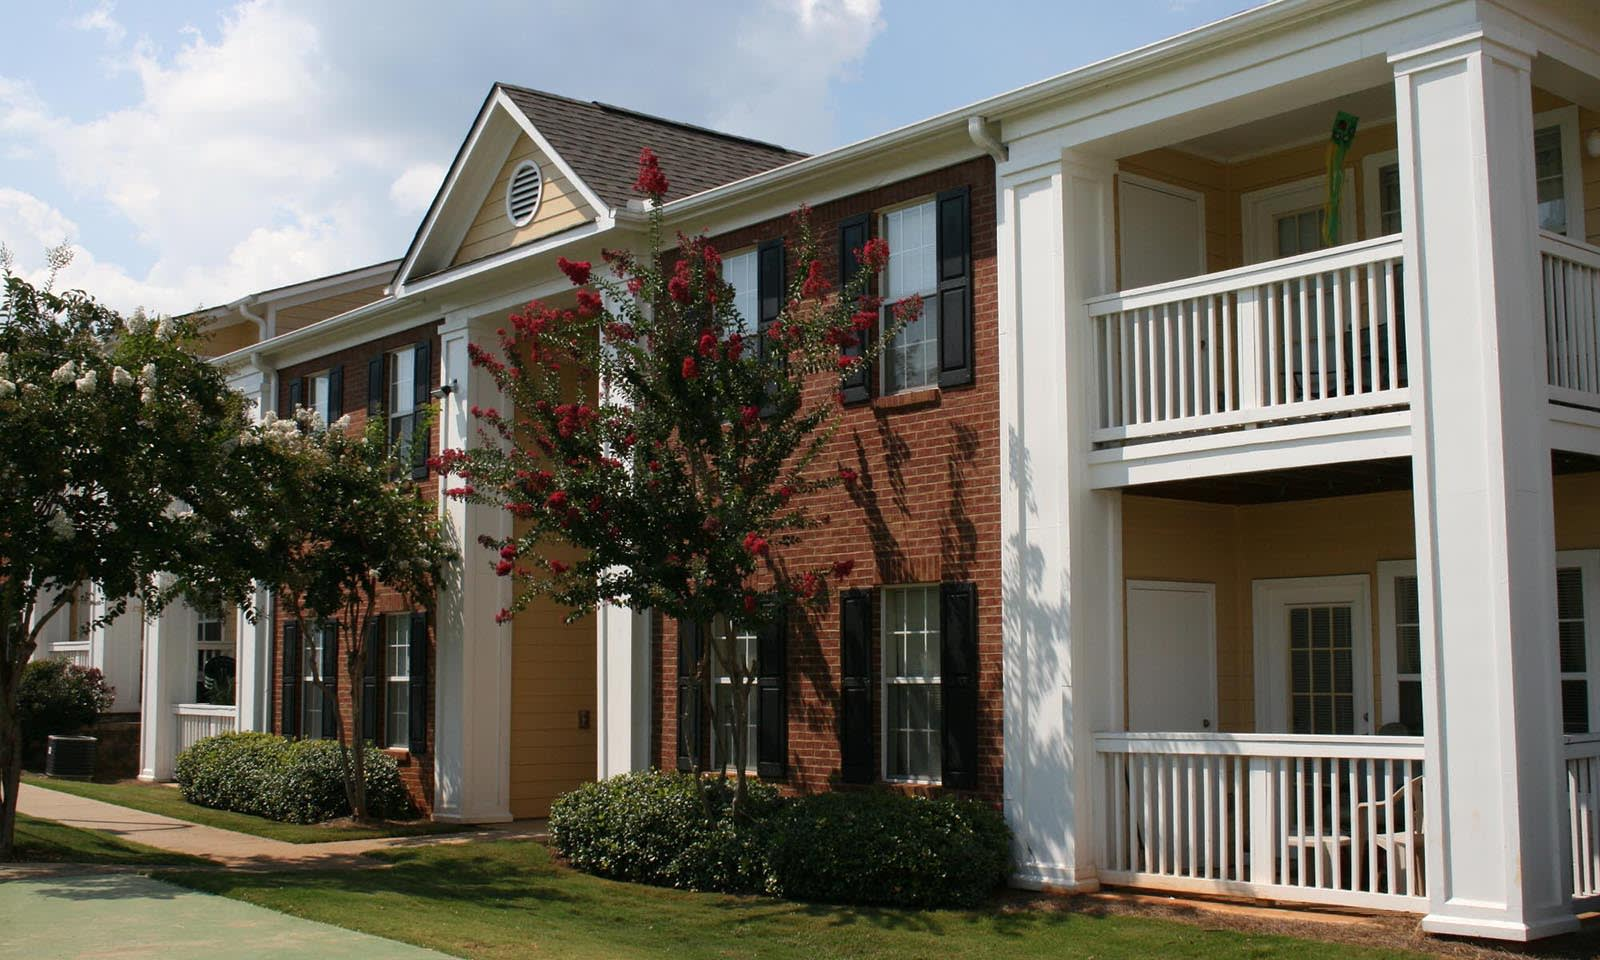 Dallas, GA Apartments for Rent in Paulding County | Magnolia Creste ...